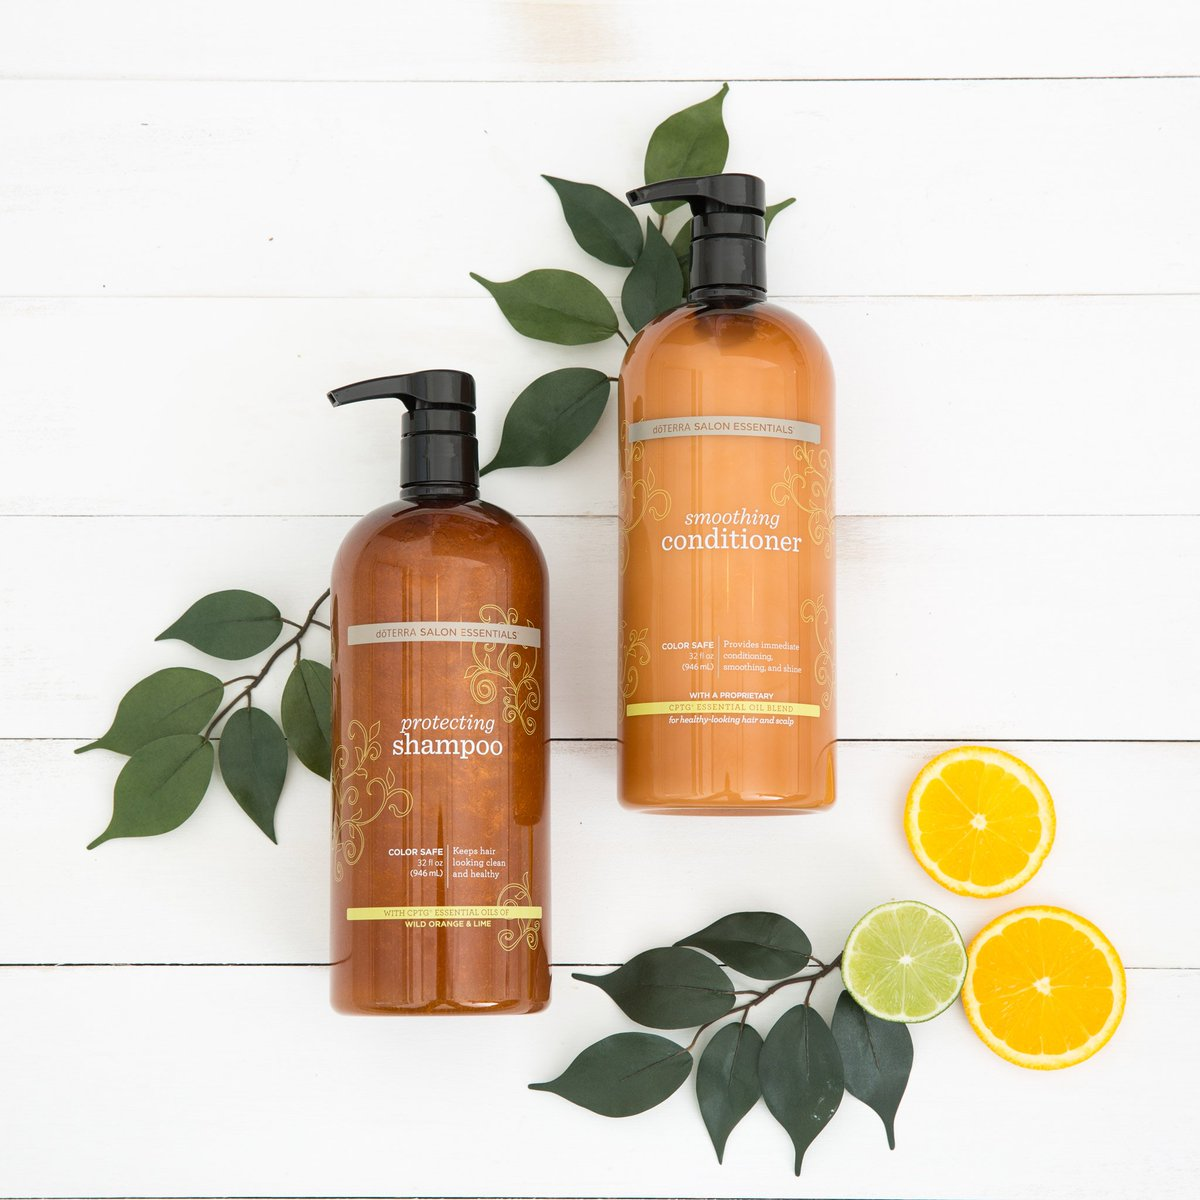 Image result for doterra shampoo and conditioner liter